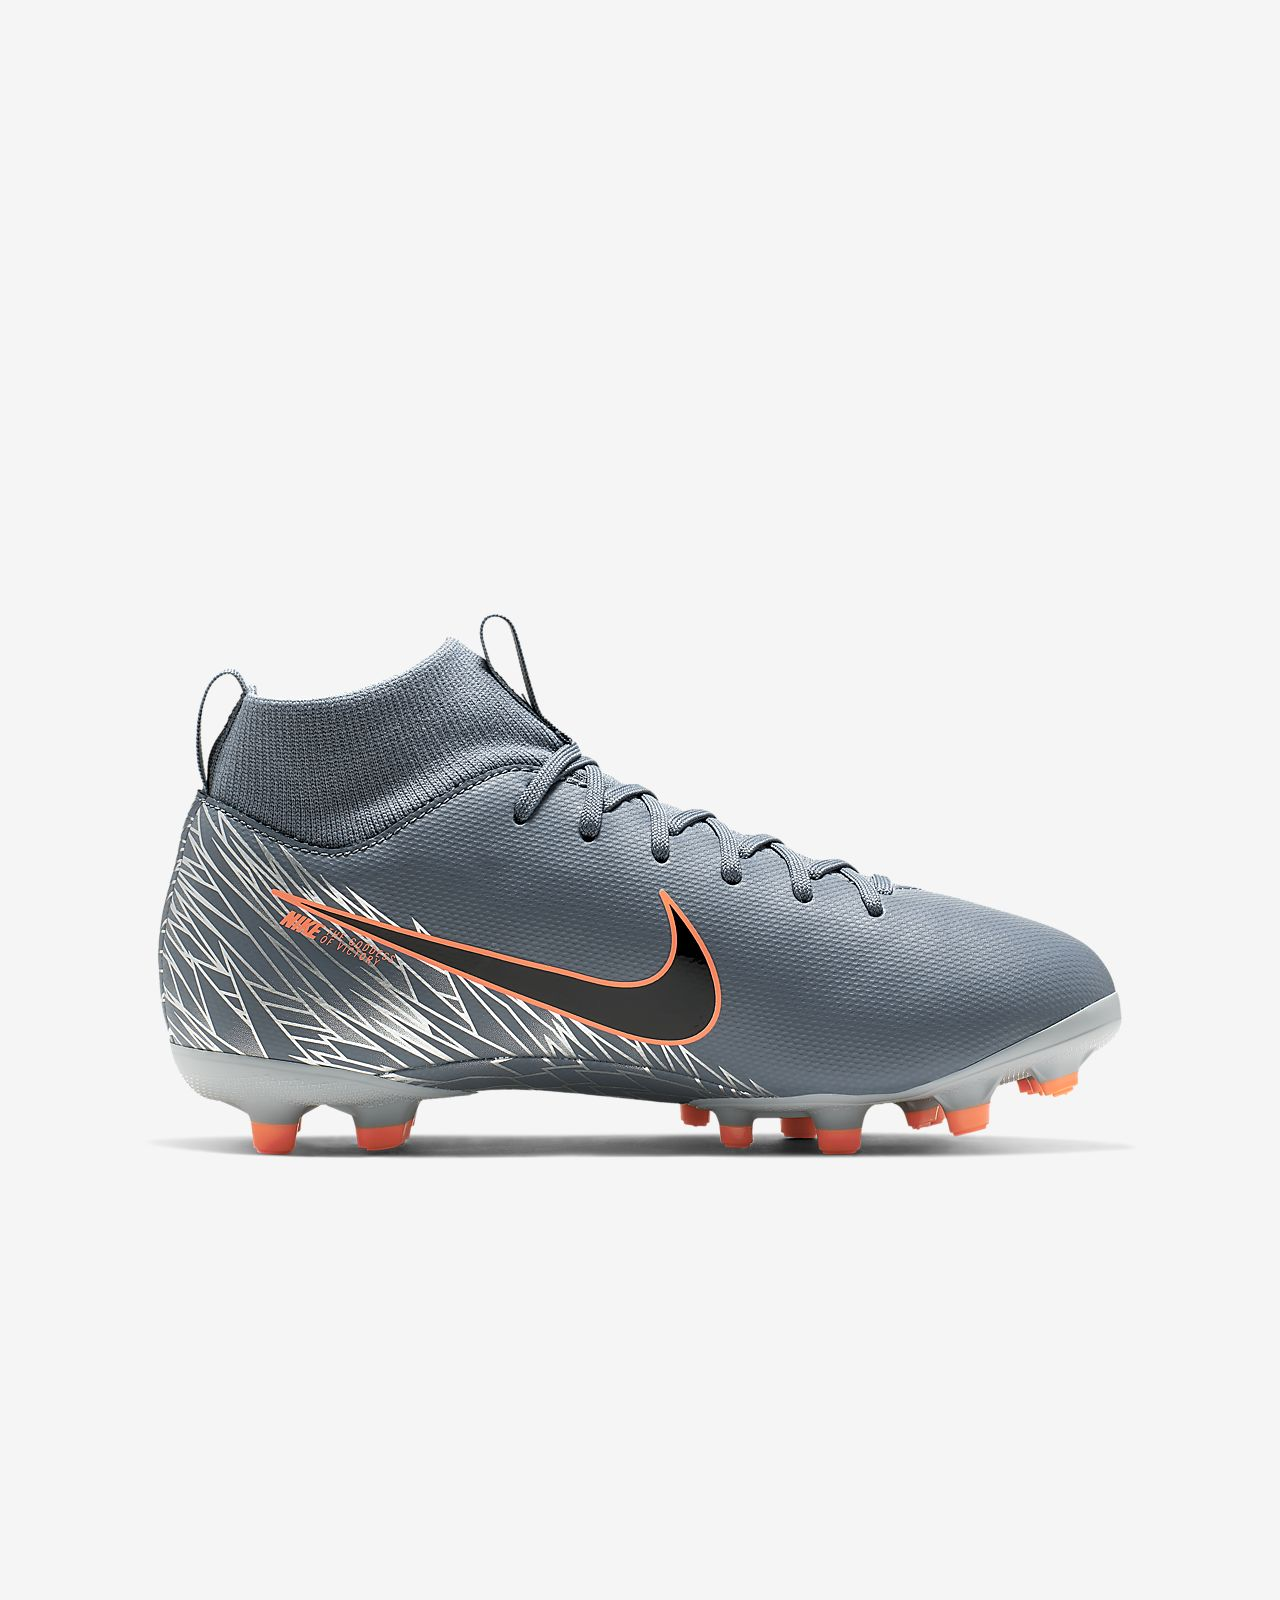 d1ea956bb8612 ... Nike Jr. Superfly 6 Academy MG Younger Older Kids  Multi-Ground Football